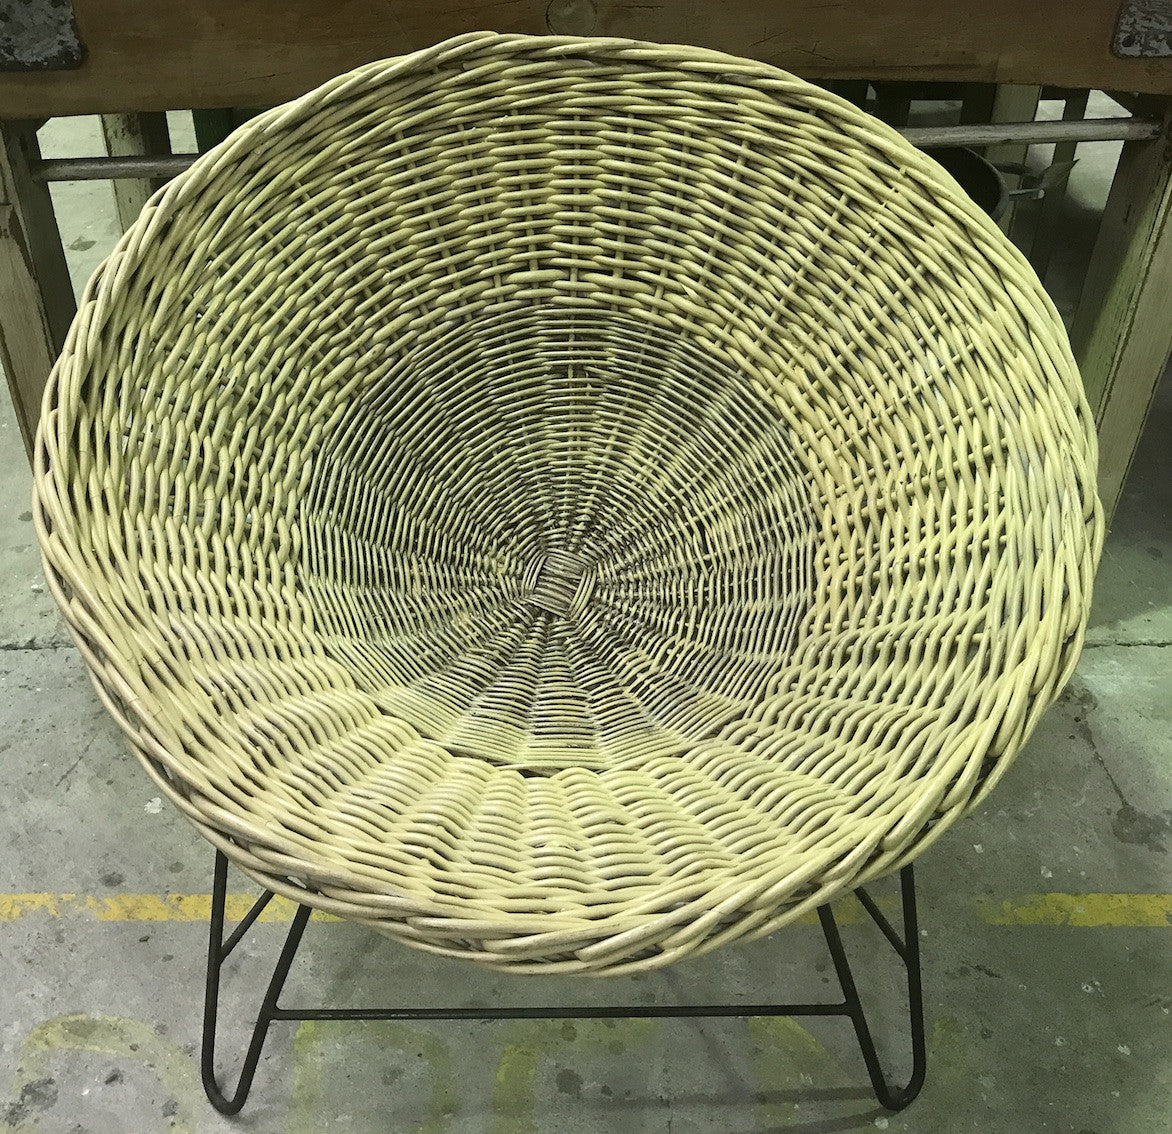 Vintage industrial Mid Century Danish Basket chair #1902